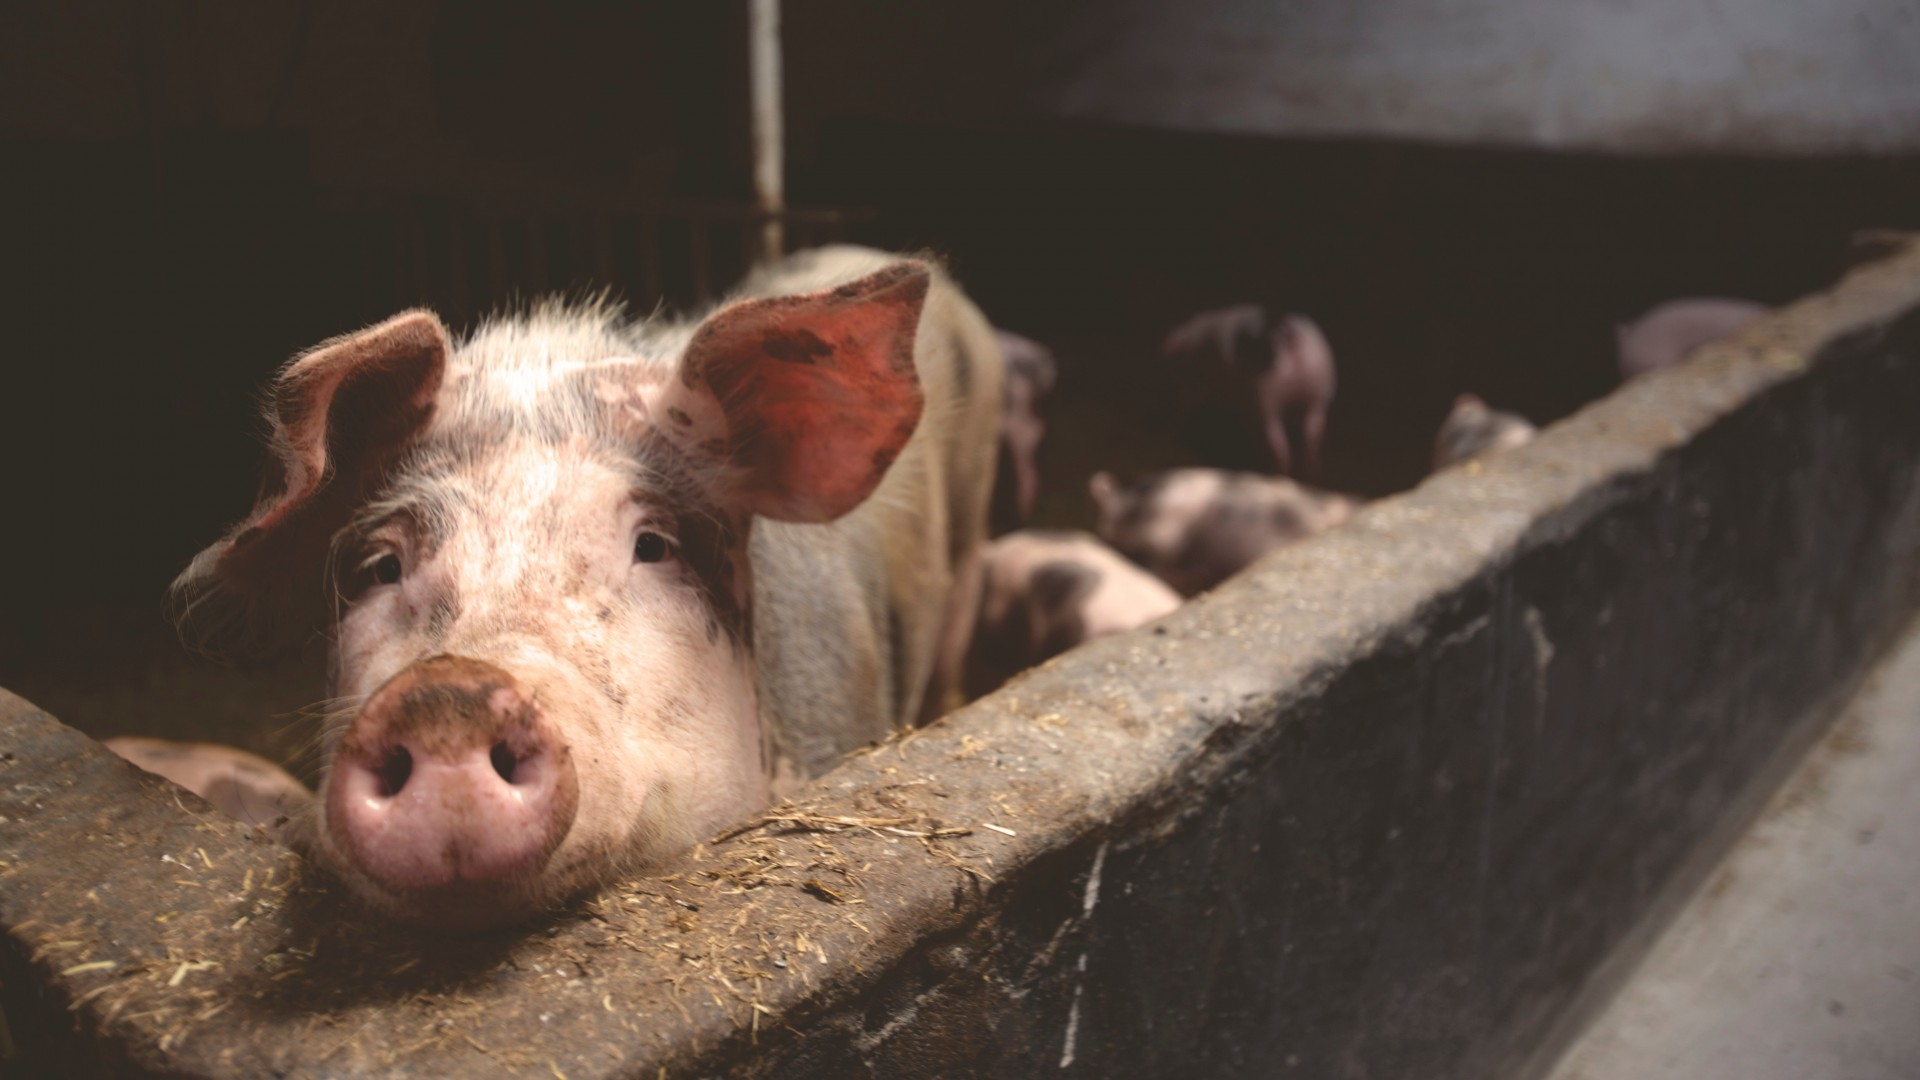 Swine viruses are sometimes deadly and can lead to significant economic losses for farmers.